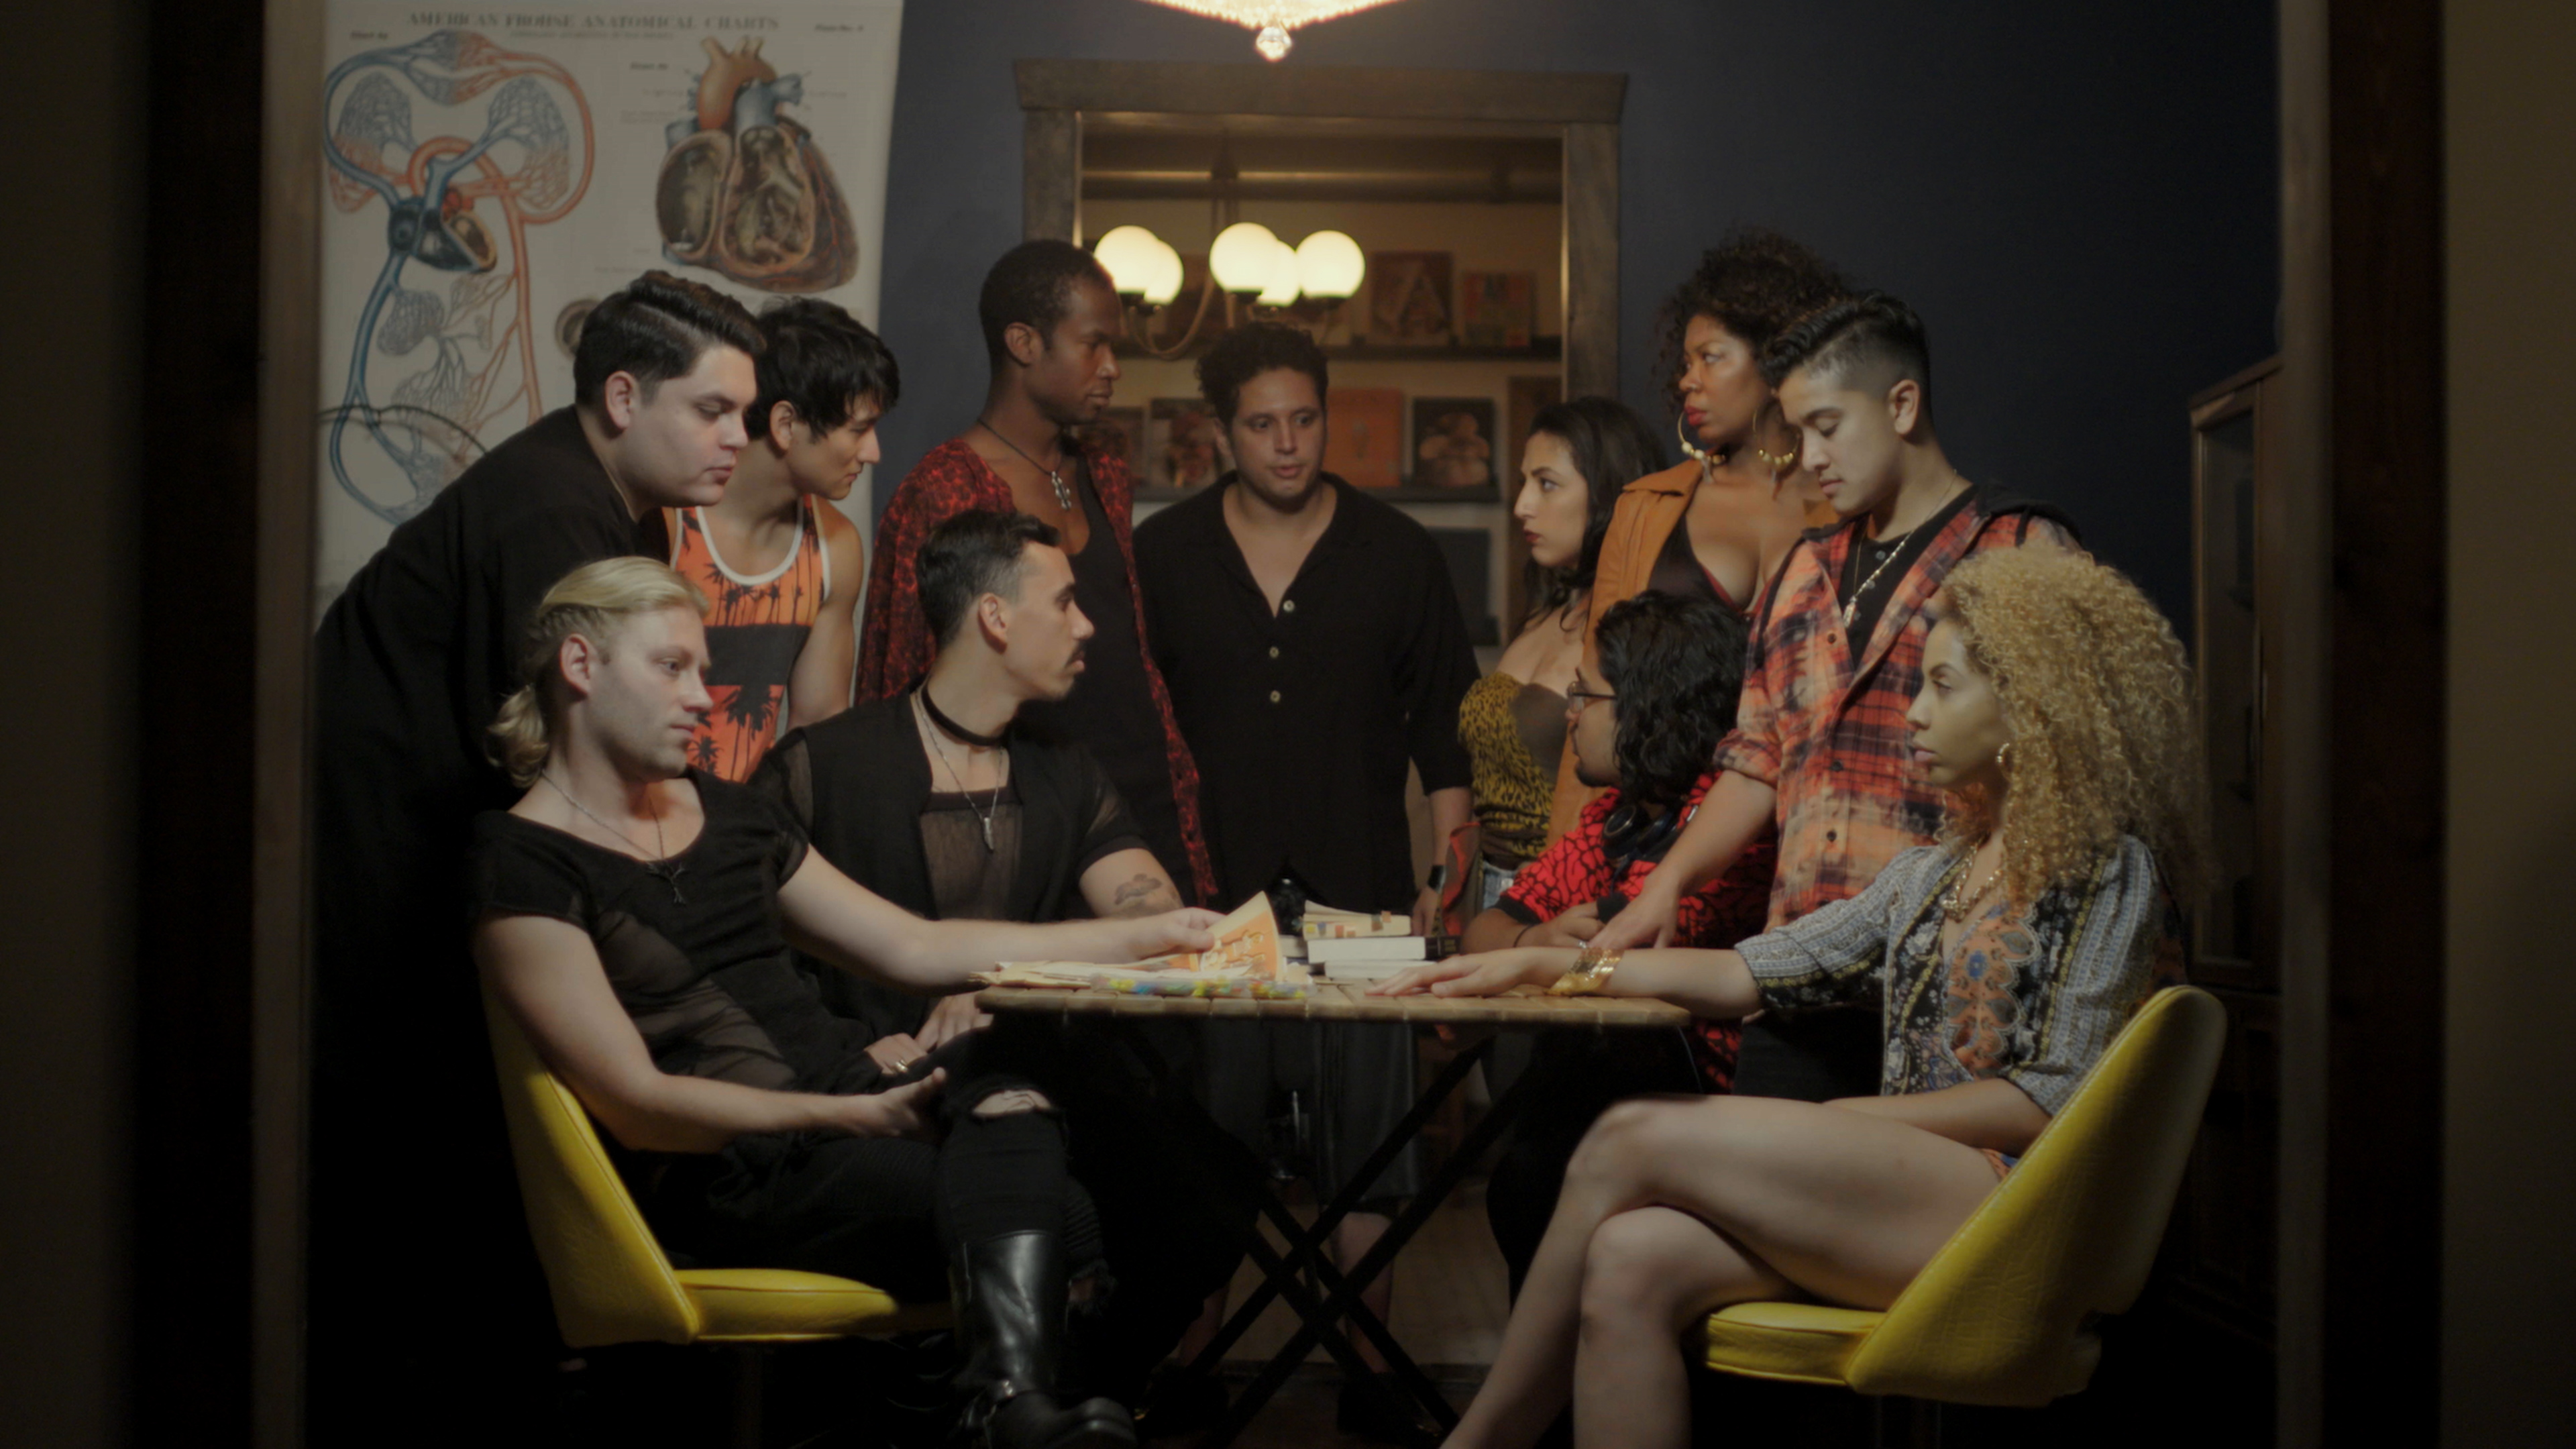 TRAILER: In New Episodes of 'Brujos,' Gay Latino Witches Are Hunted by Rich White Guys